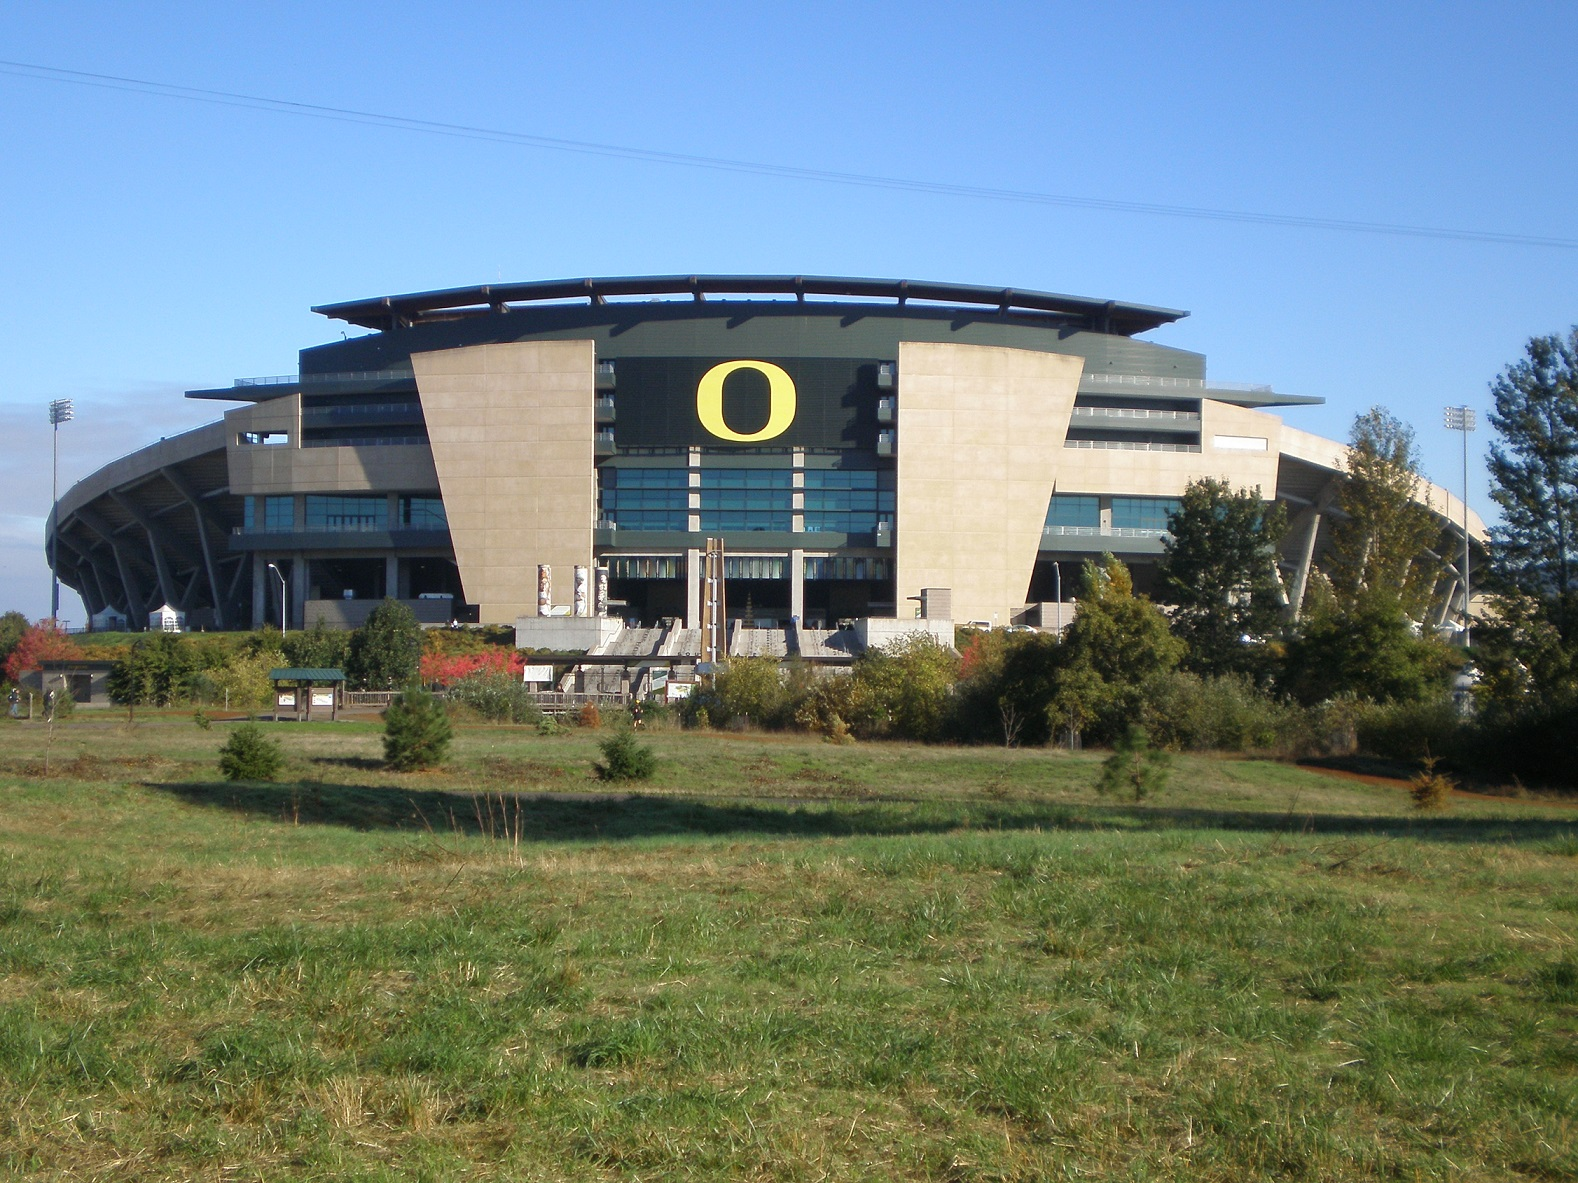 What is the time in eugene oregon